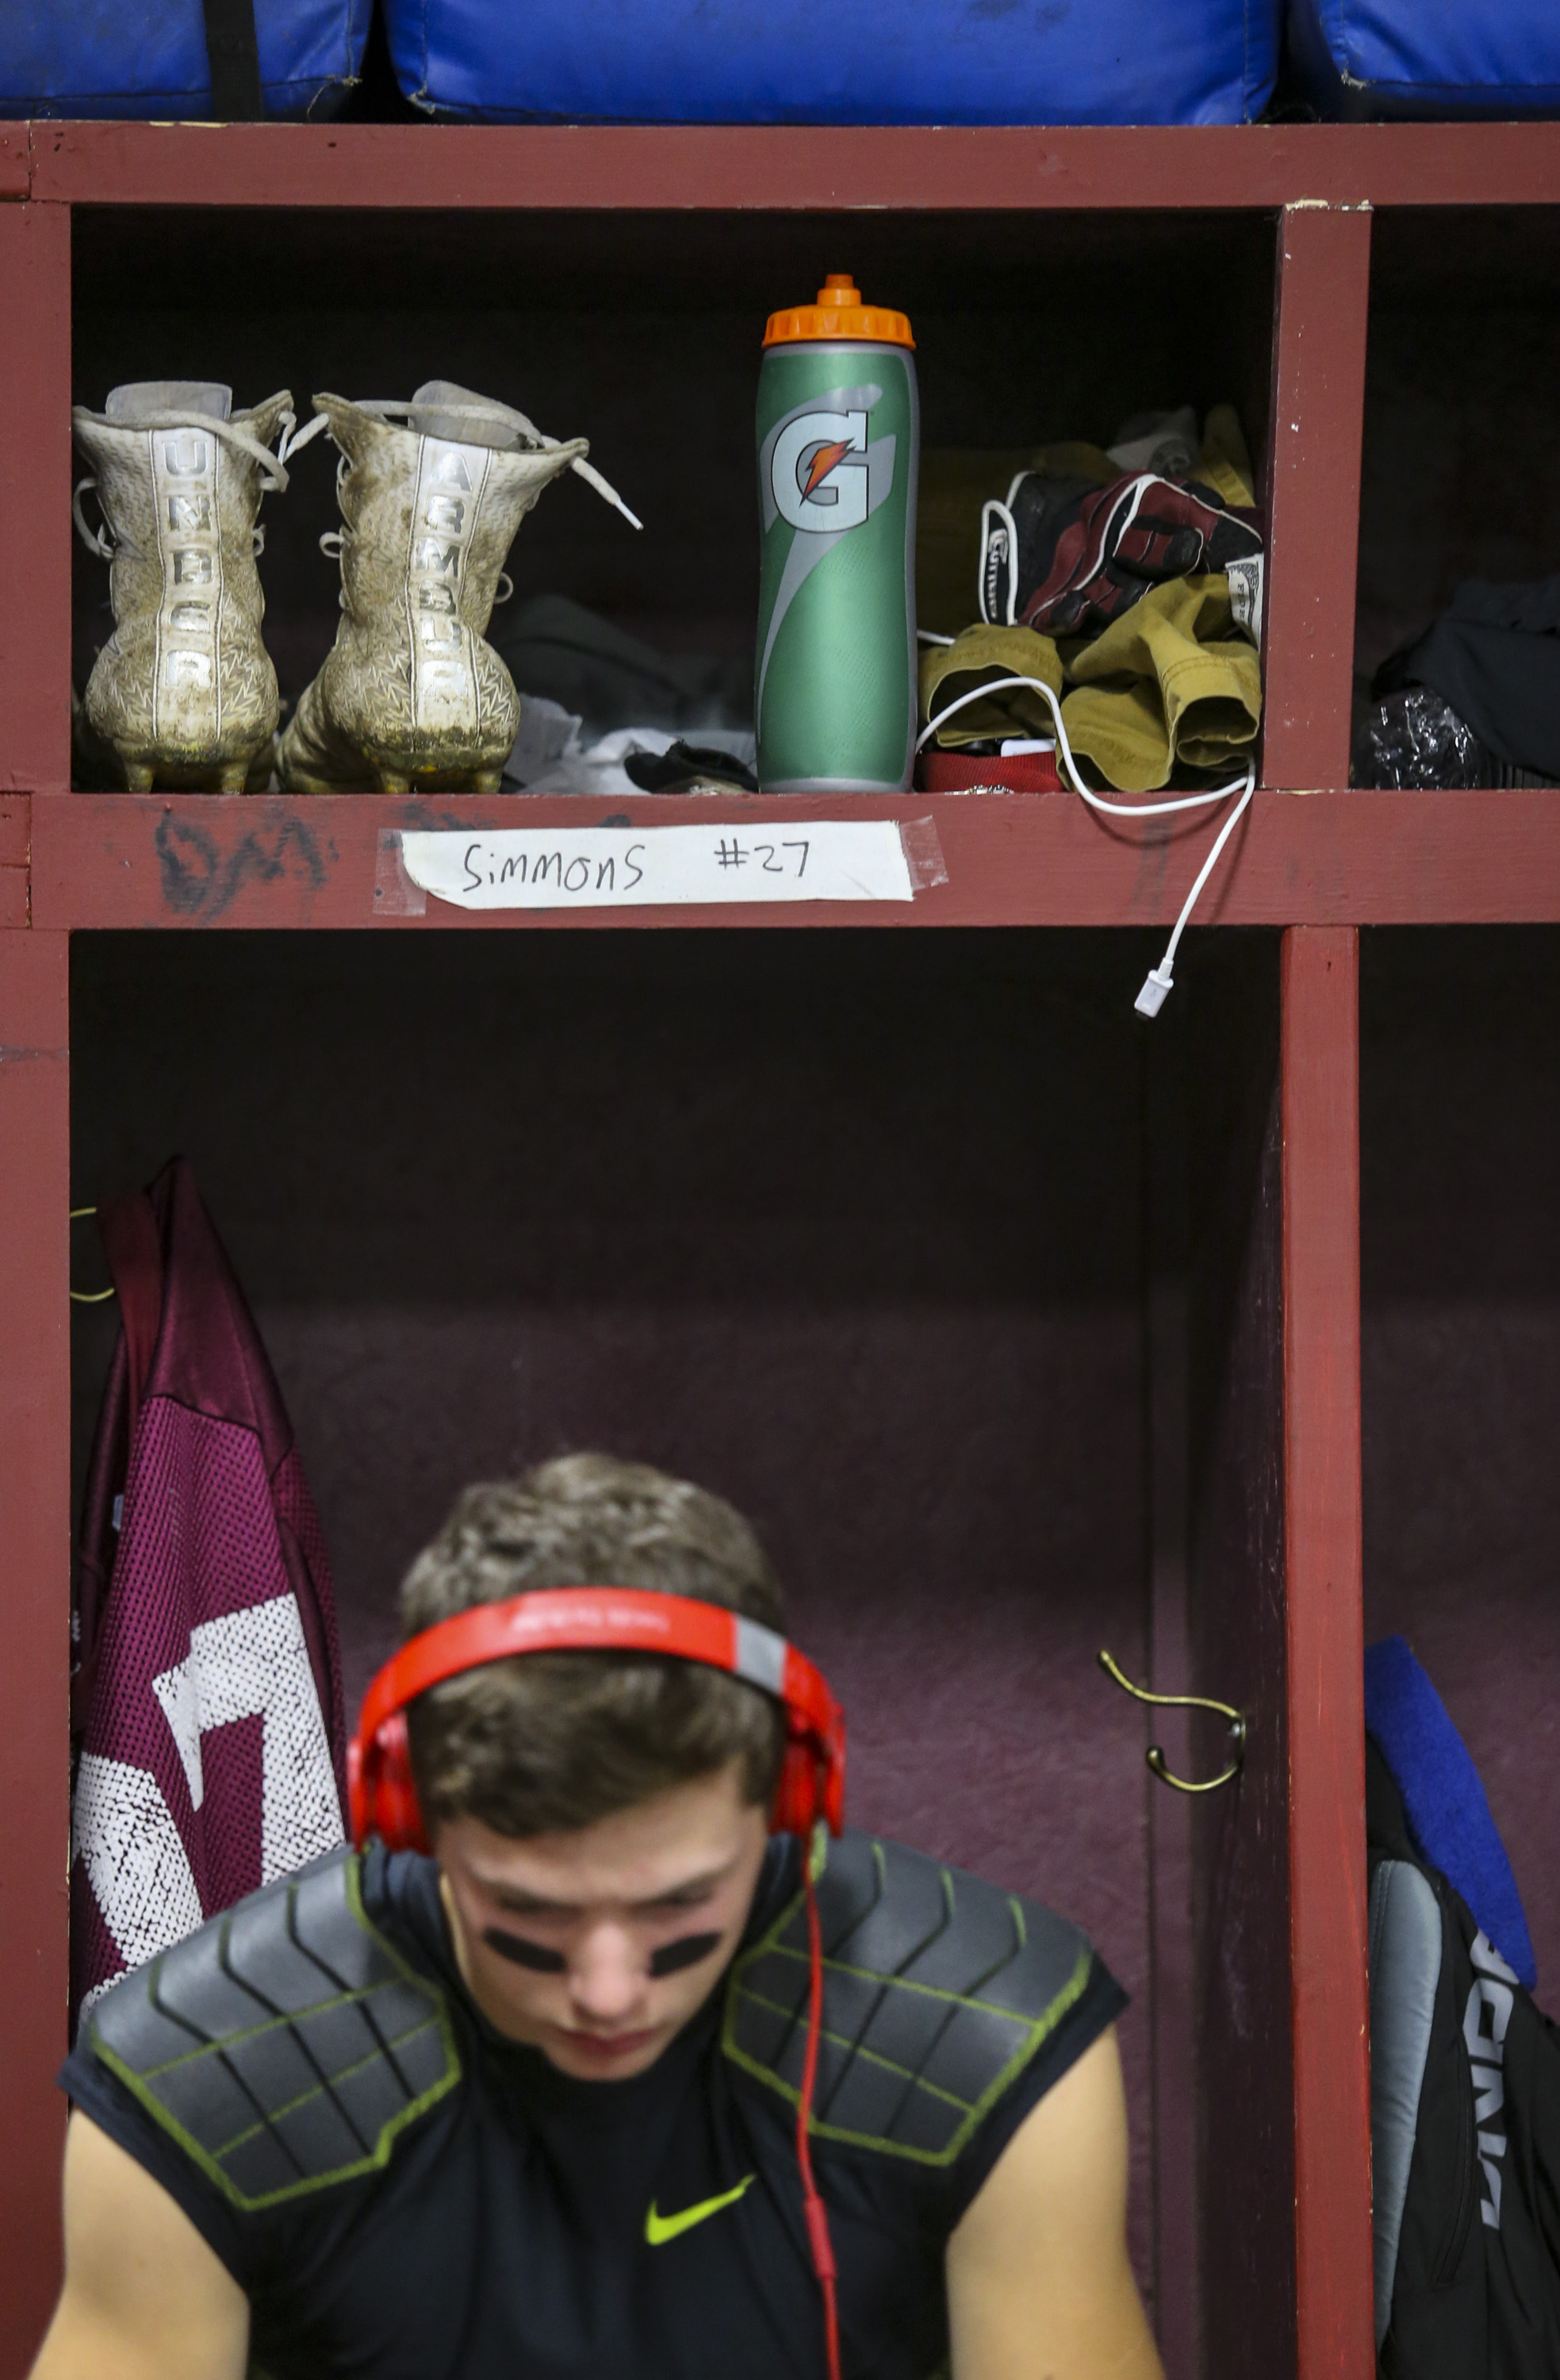 Rockridge varsity player Will Simmons (27) listens to music in the locker room before their game at Rockridge High School in Edginton, Friday, October 20, 2017.